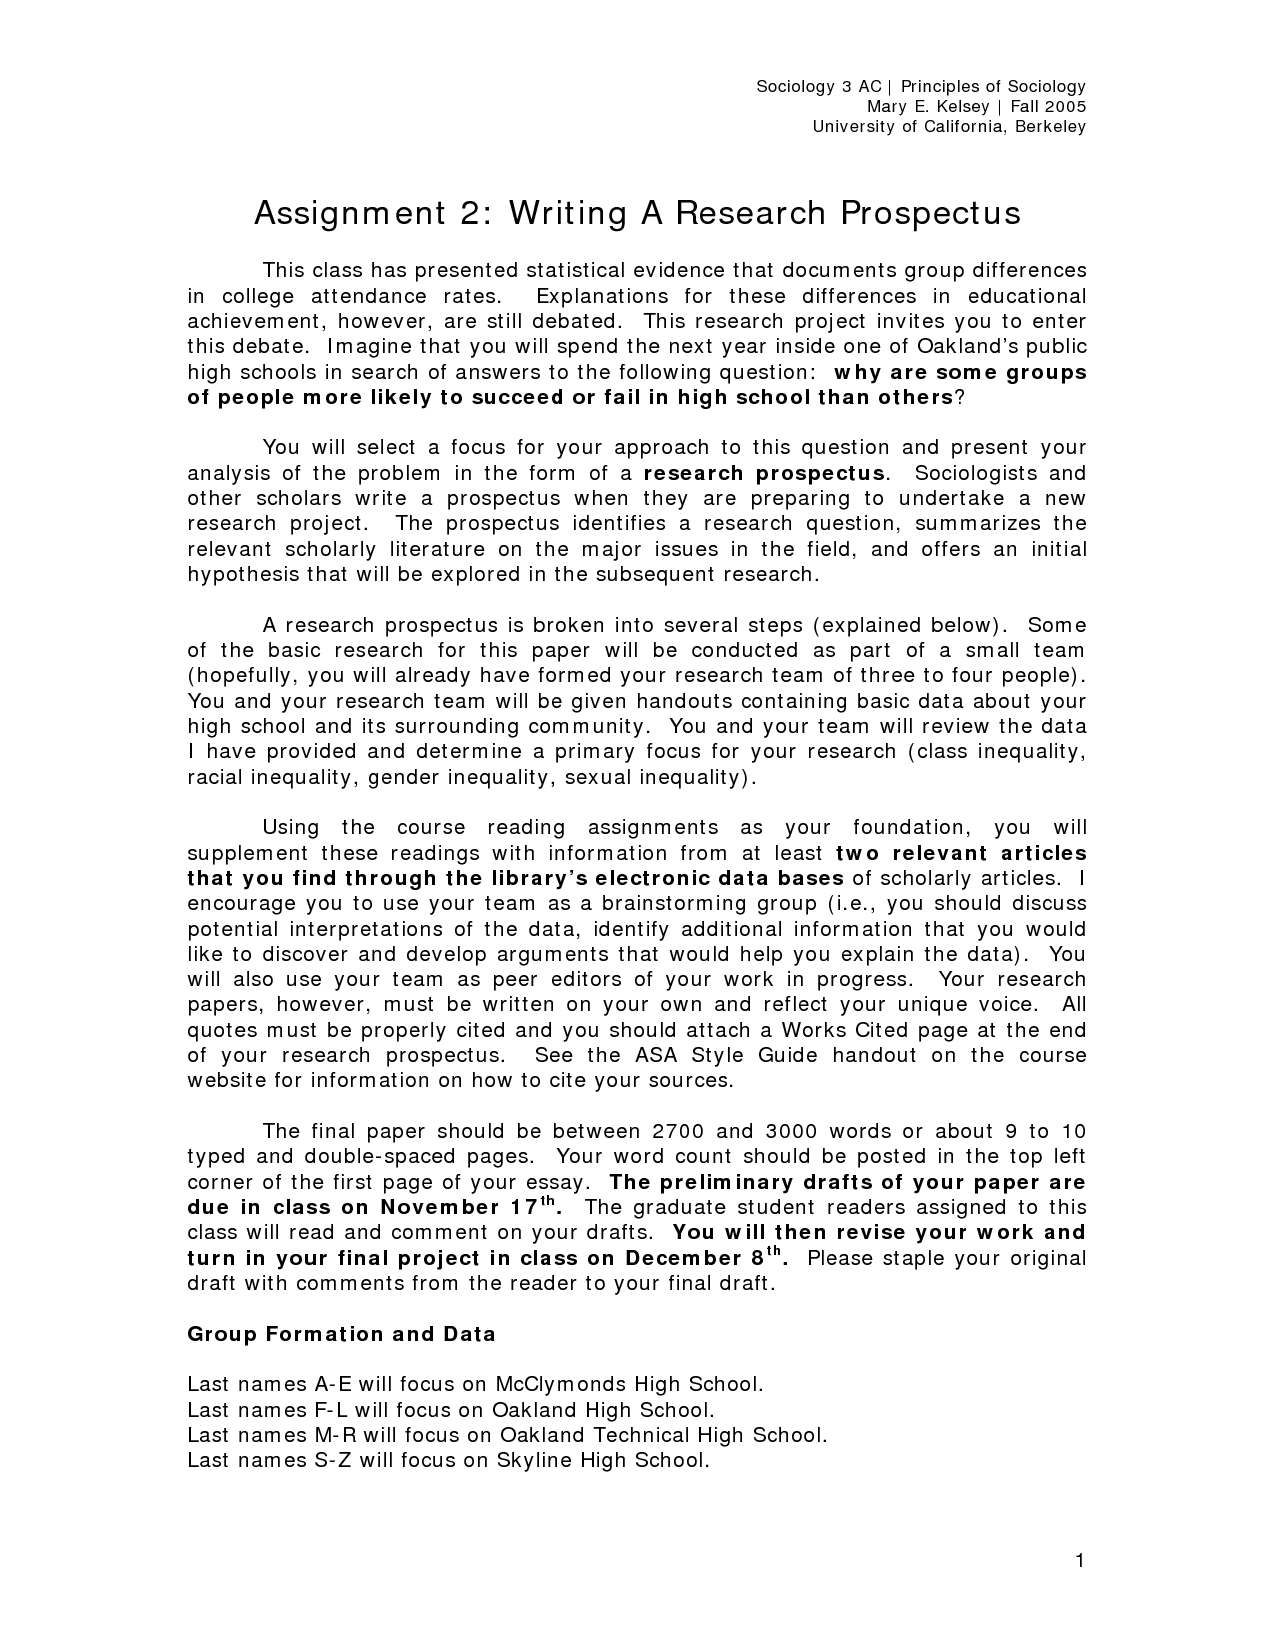 sample prospectus for research paper - tips how to write a good prospectus